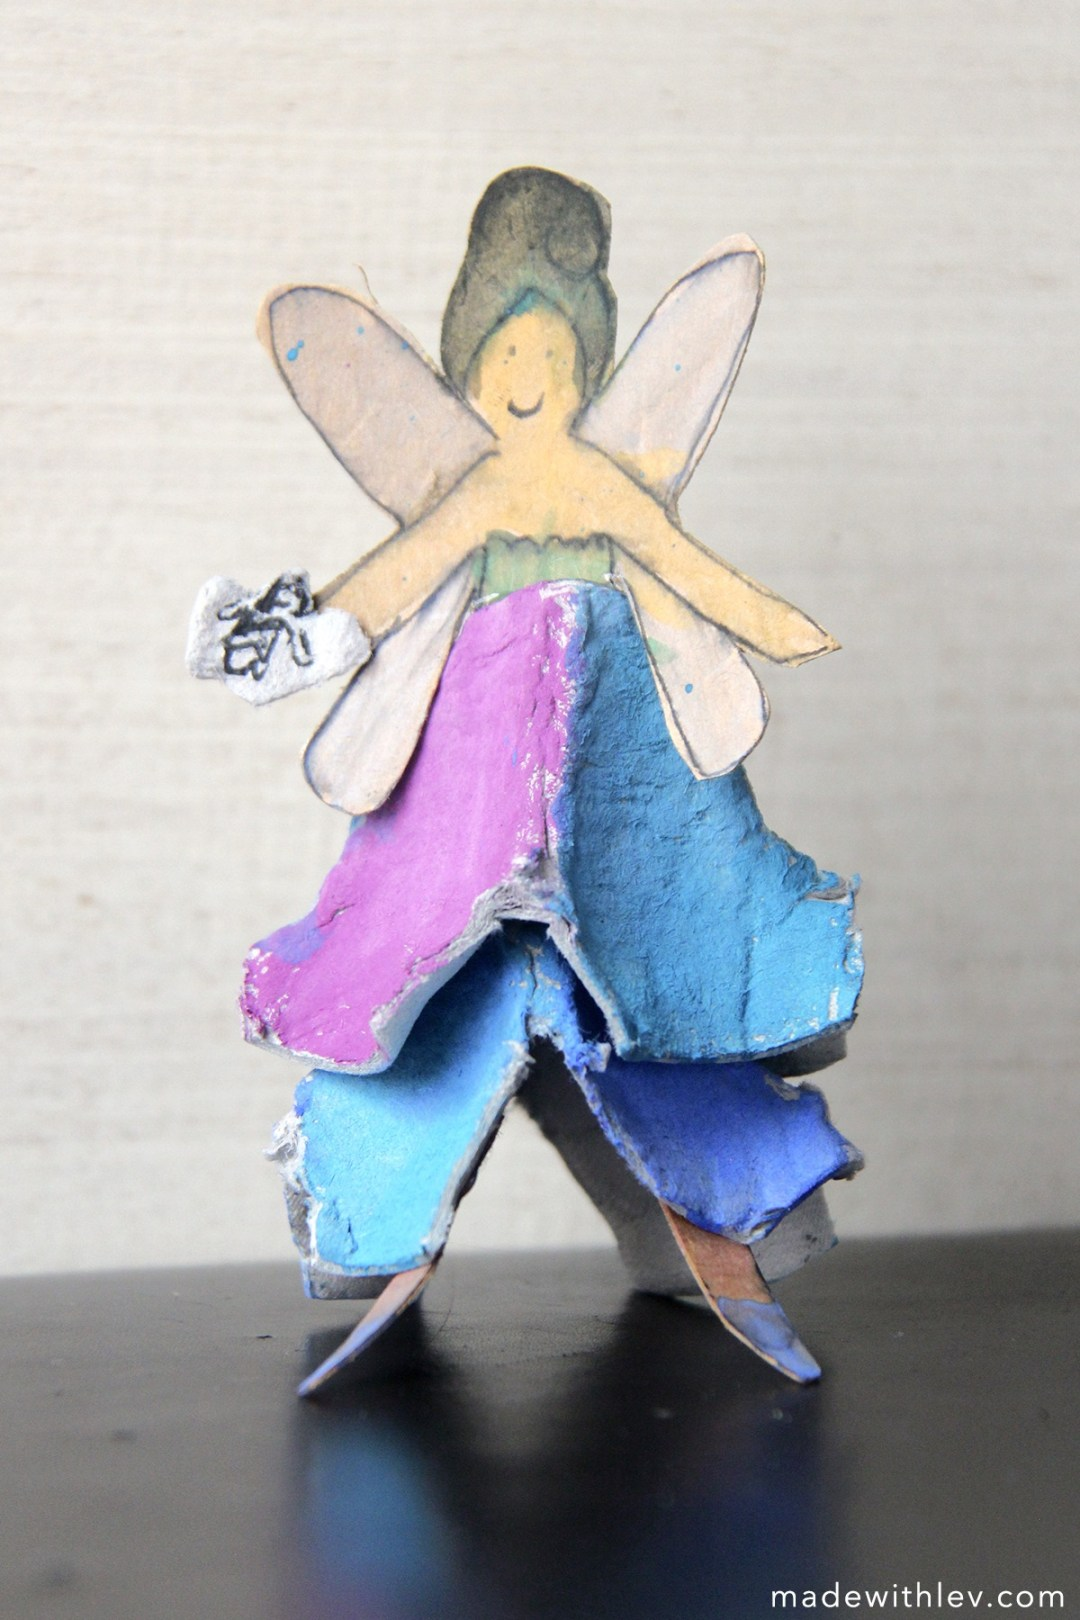 Egg carton fairies: fairies made from egg cartons and cardboard. Tutorial via ART CAMP.